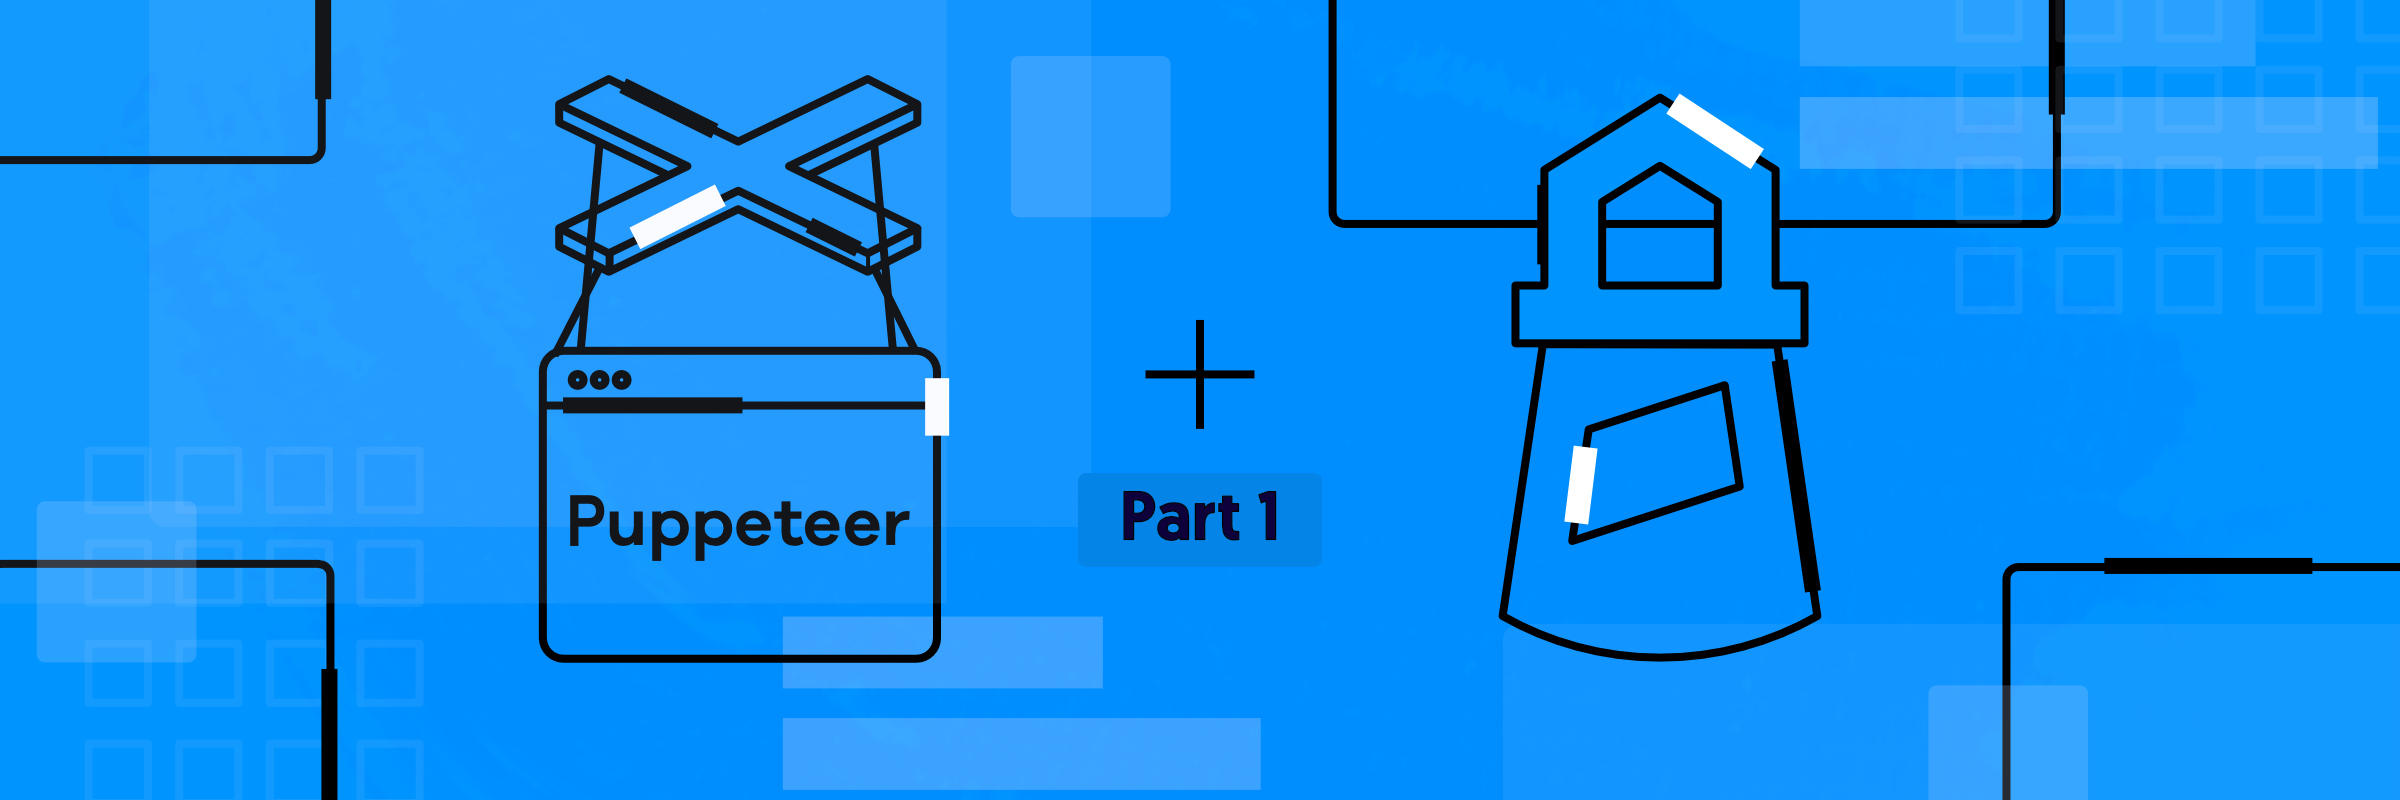 Moving from single fire to scheduled tasks with Puppeteer and Lighthouse Part 1